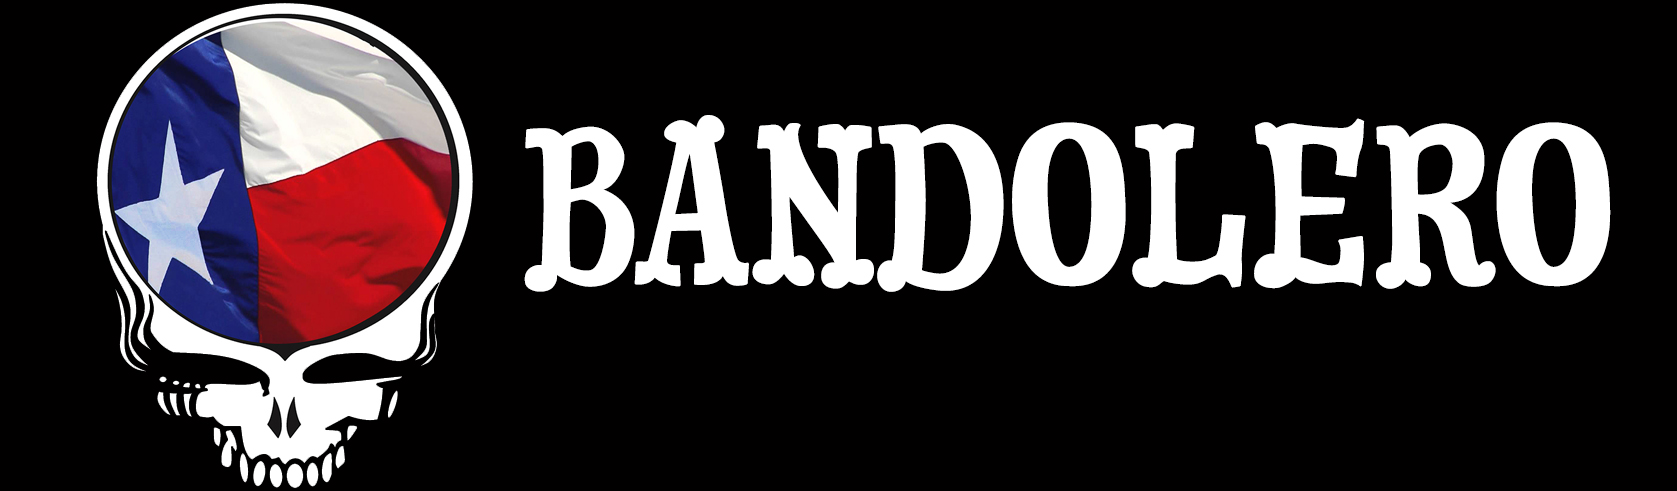 Bandolero – A Texafied Celebration of the Grateful Dead & Kindred Spirits